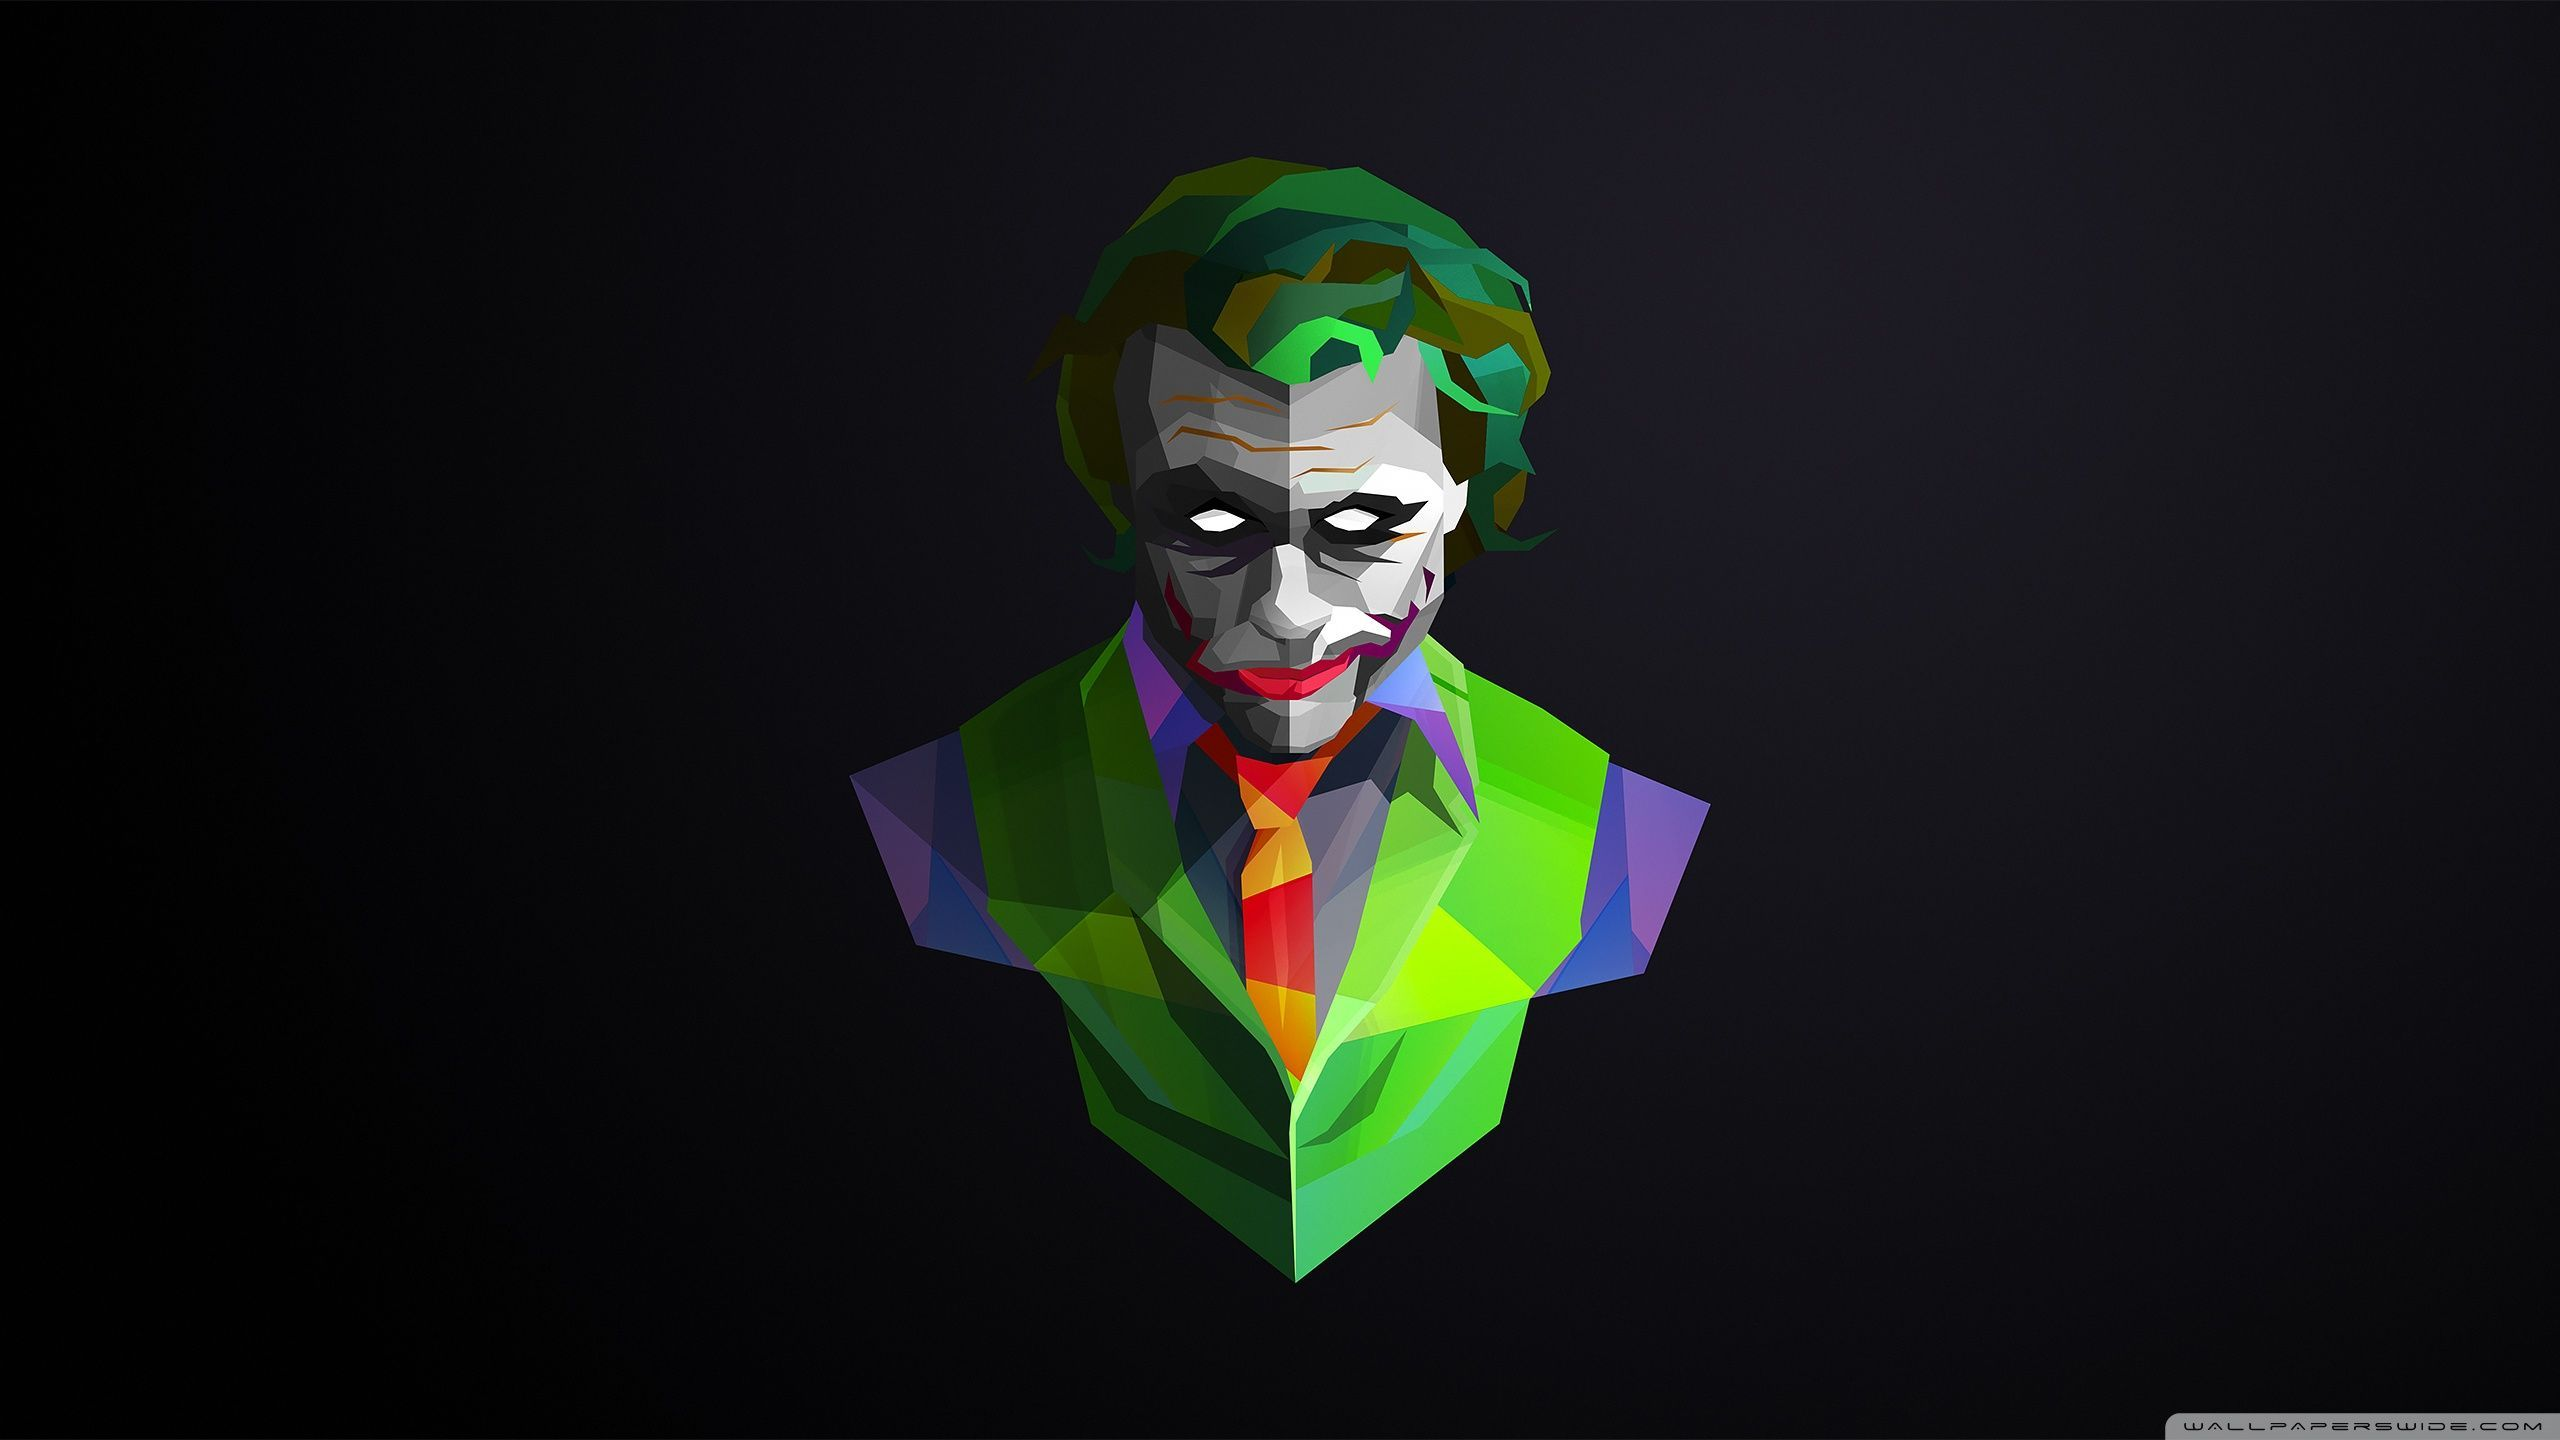 2560x1440 Wallpaperswide Com Joker Hd Wallpapers For 4k Ultra Hd Tv Wide In 2020 Joker Hd Wallpaper Joker Wallpapers Joker Background